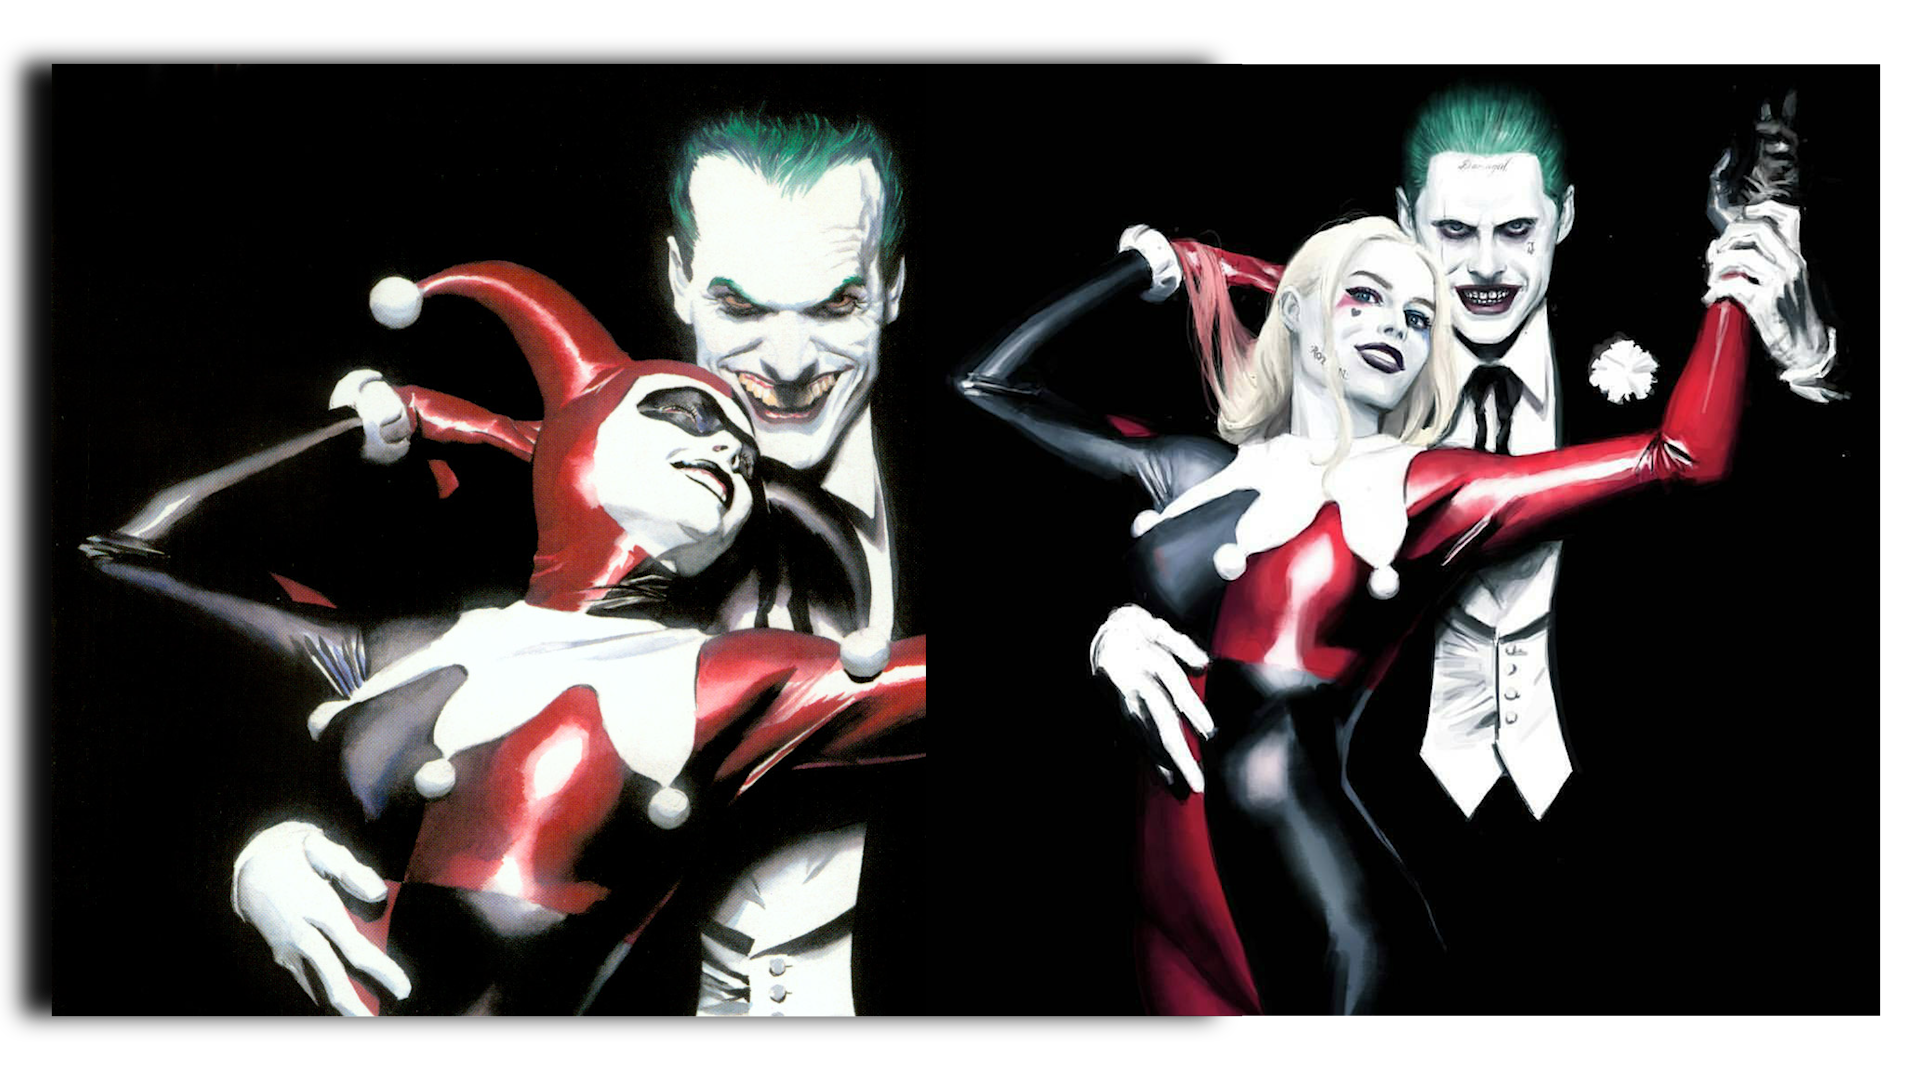 The Atz Show Joker S Tattoos Explained Suicide Squad Easter Eggs